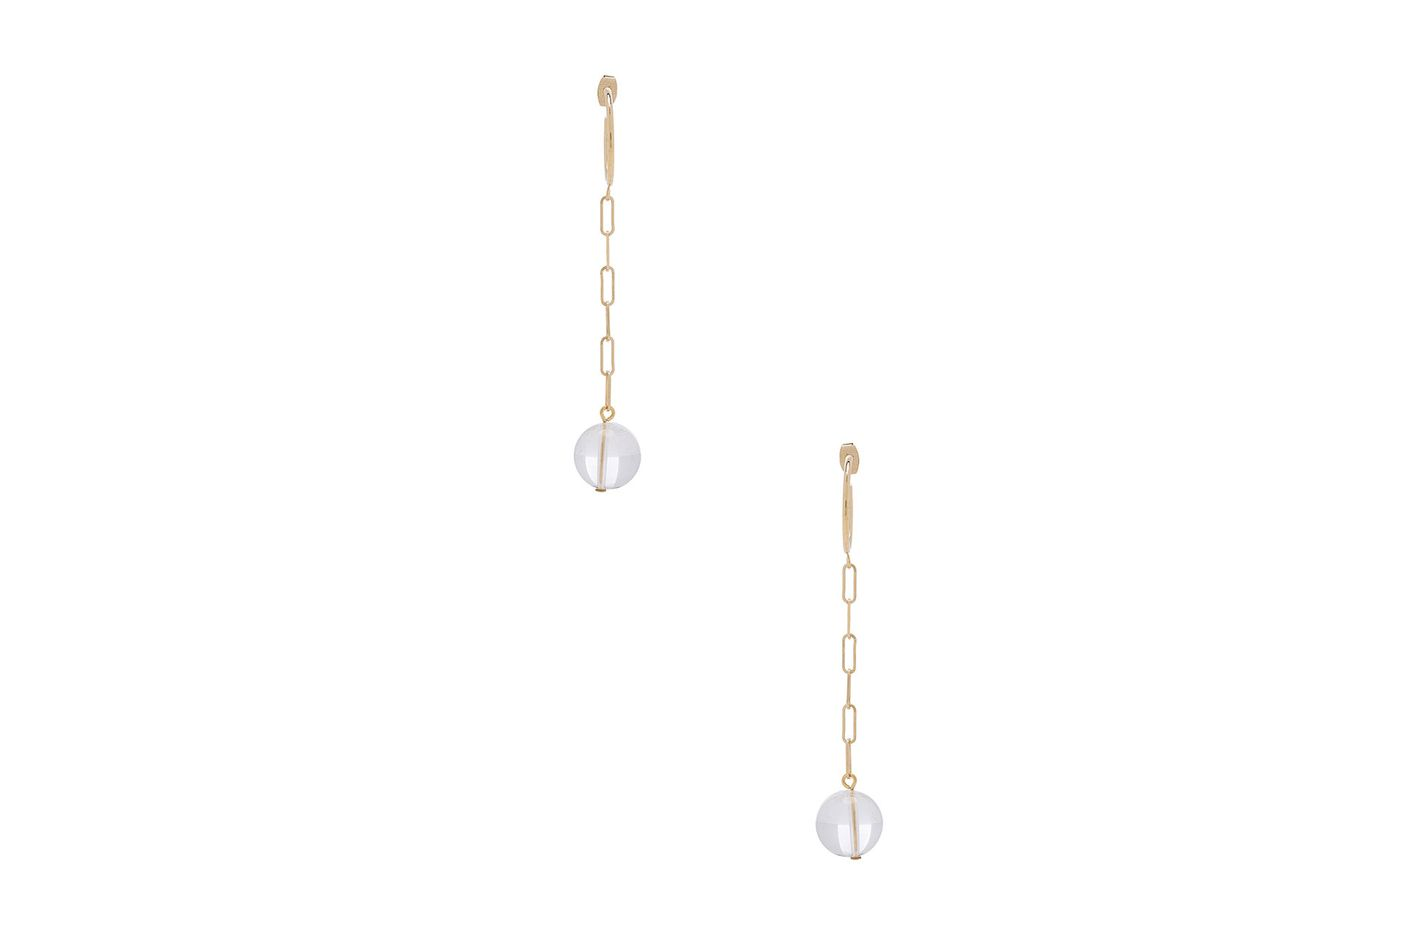 Isabel Marant Stones Earrings